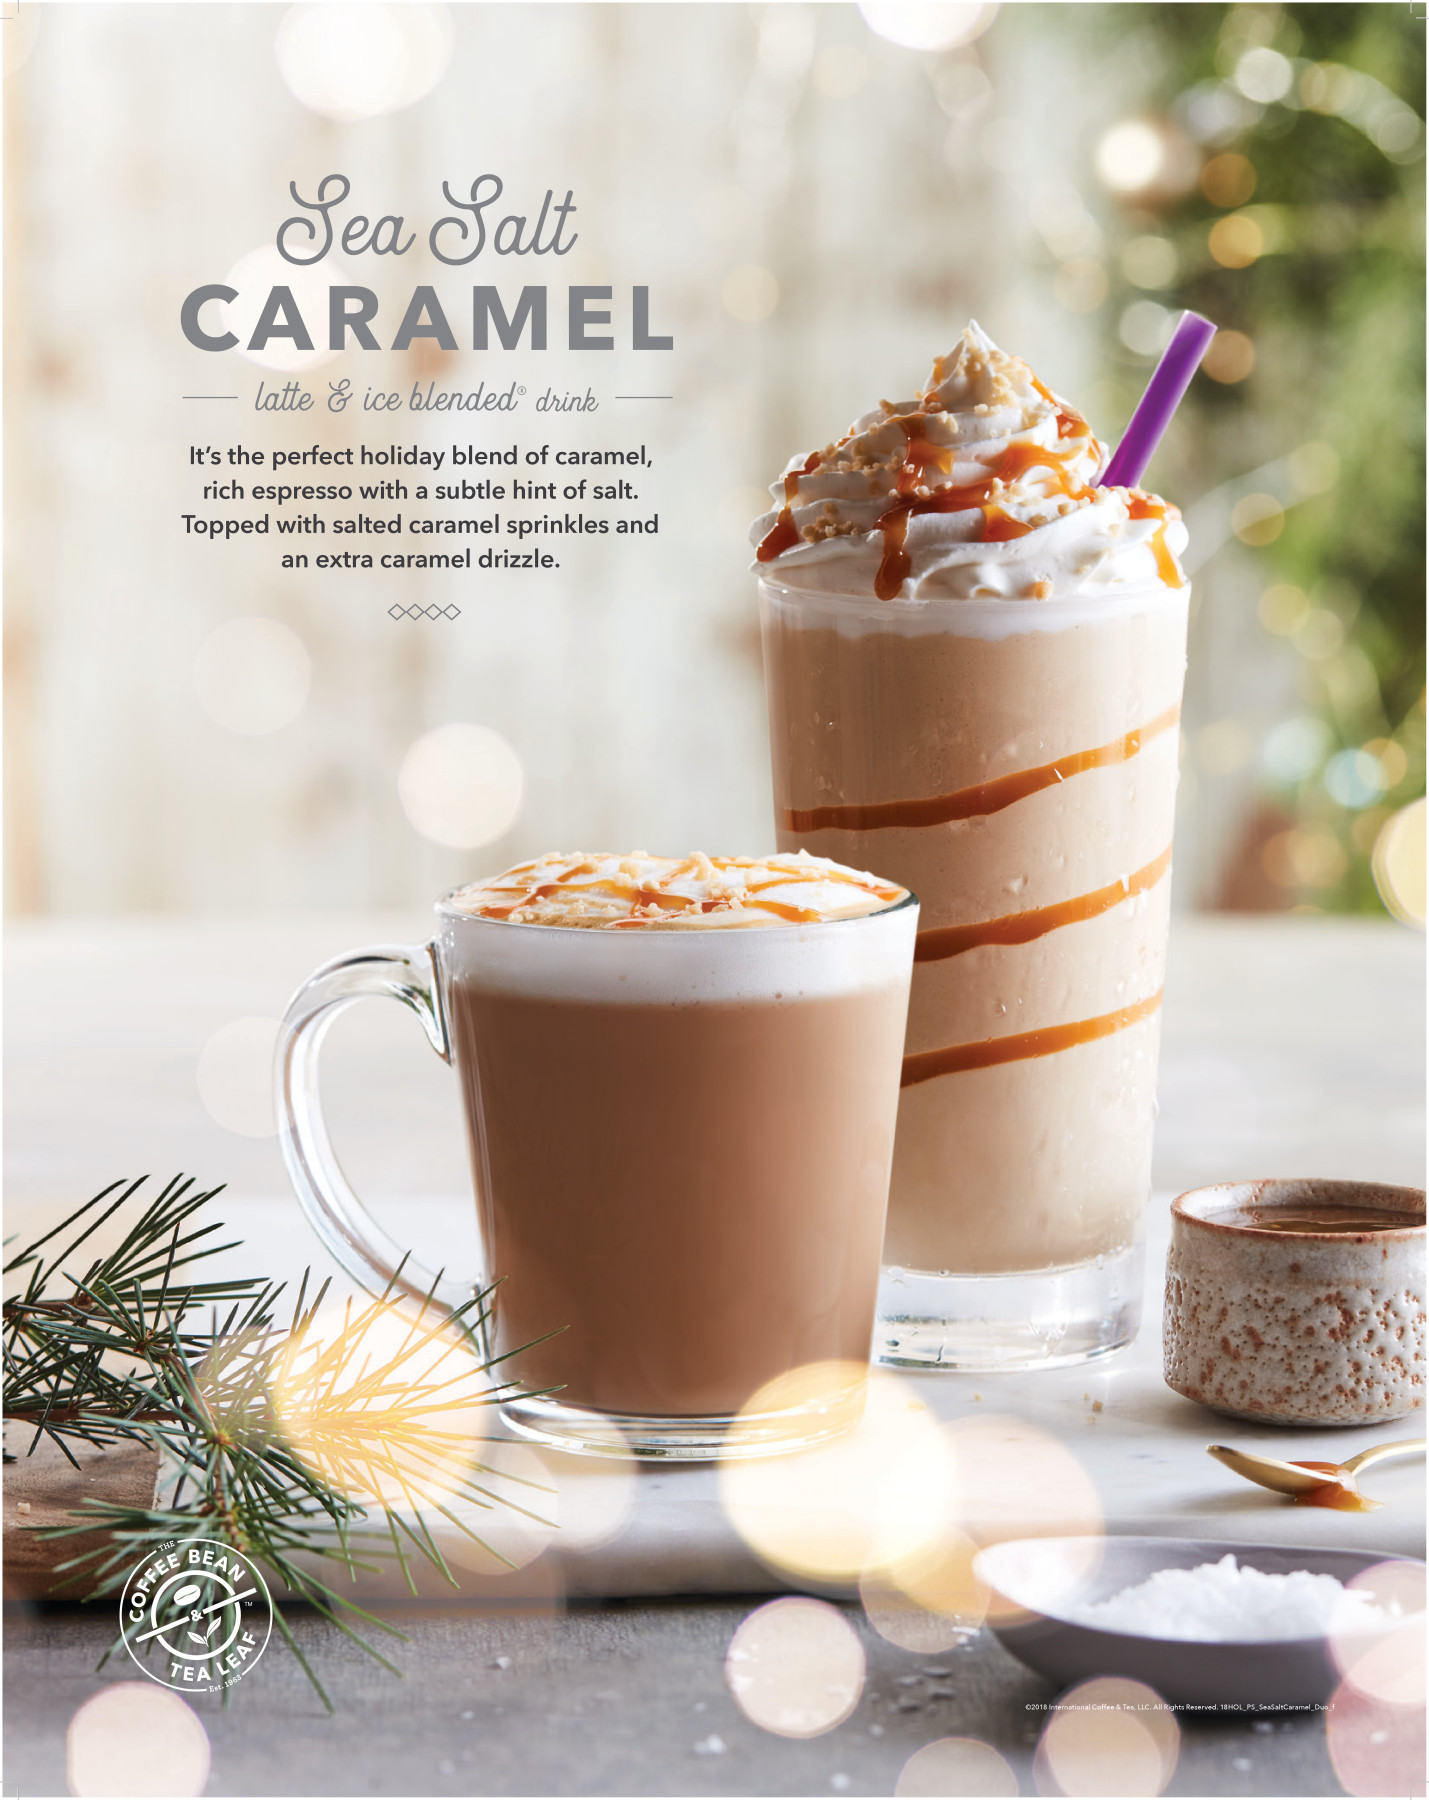 Matt Armendariz For Coffee Bean & Tea Leaf 2018 Holiday07.jpg